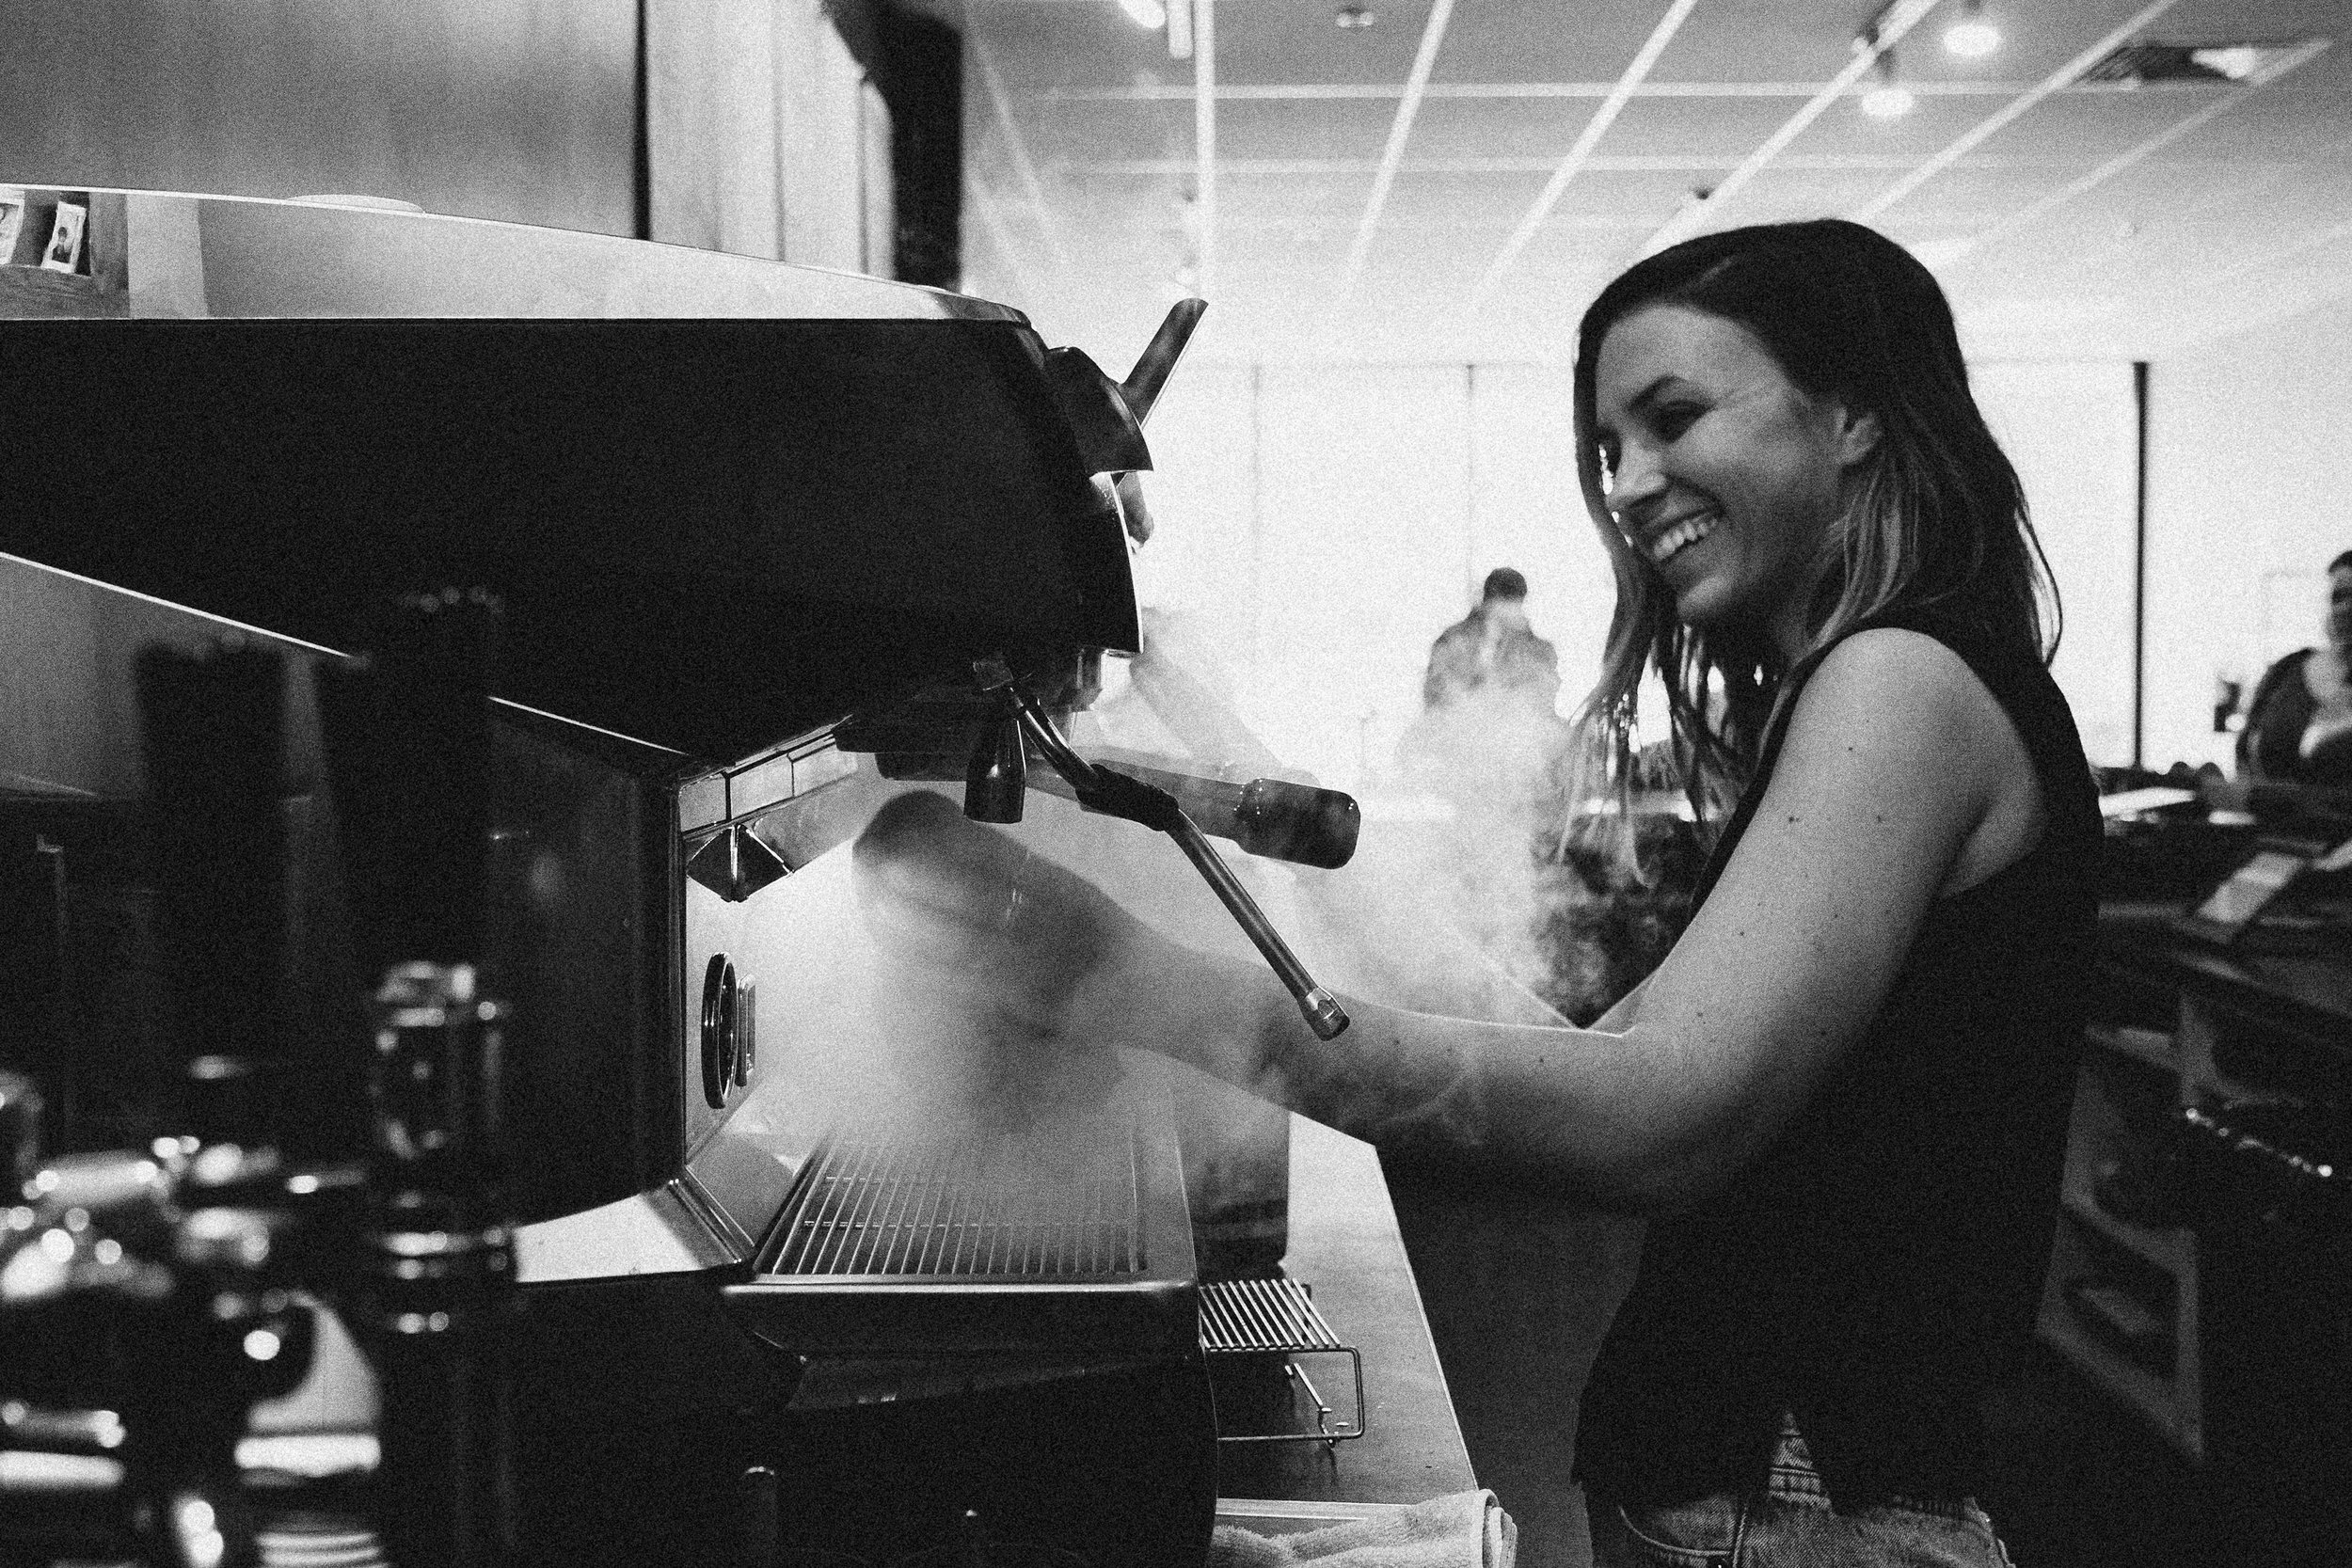 Who? - The ideal barista is someone who's self disciplined & truly committed in working with quality products, but most importantly, providing guests with great hospitality.Previous experience not necessary, but preferred. What matters most to us is who you are—a strong sense of self & a high standard of excellence. The tangible things can be taught.